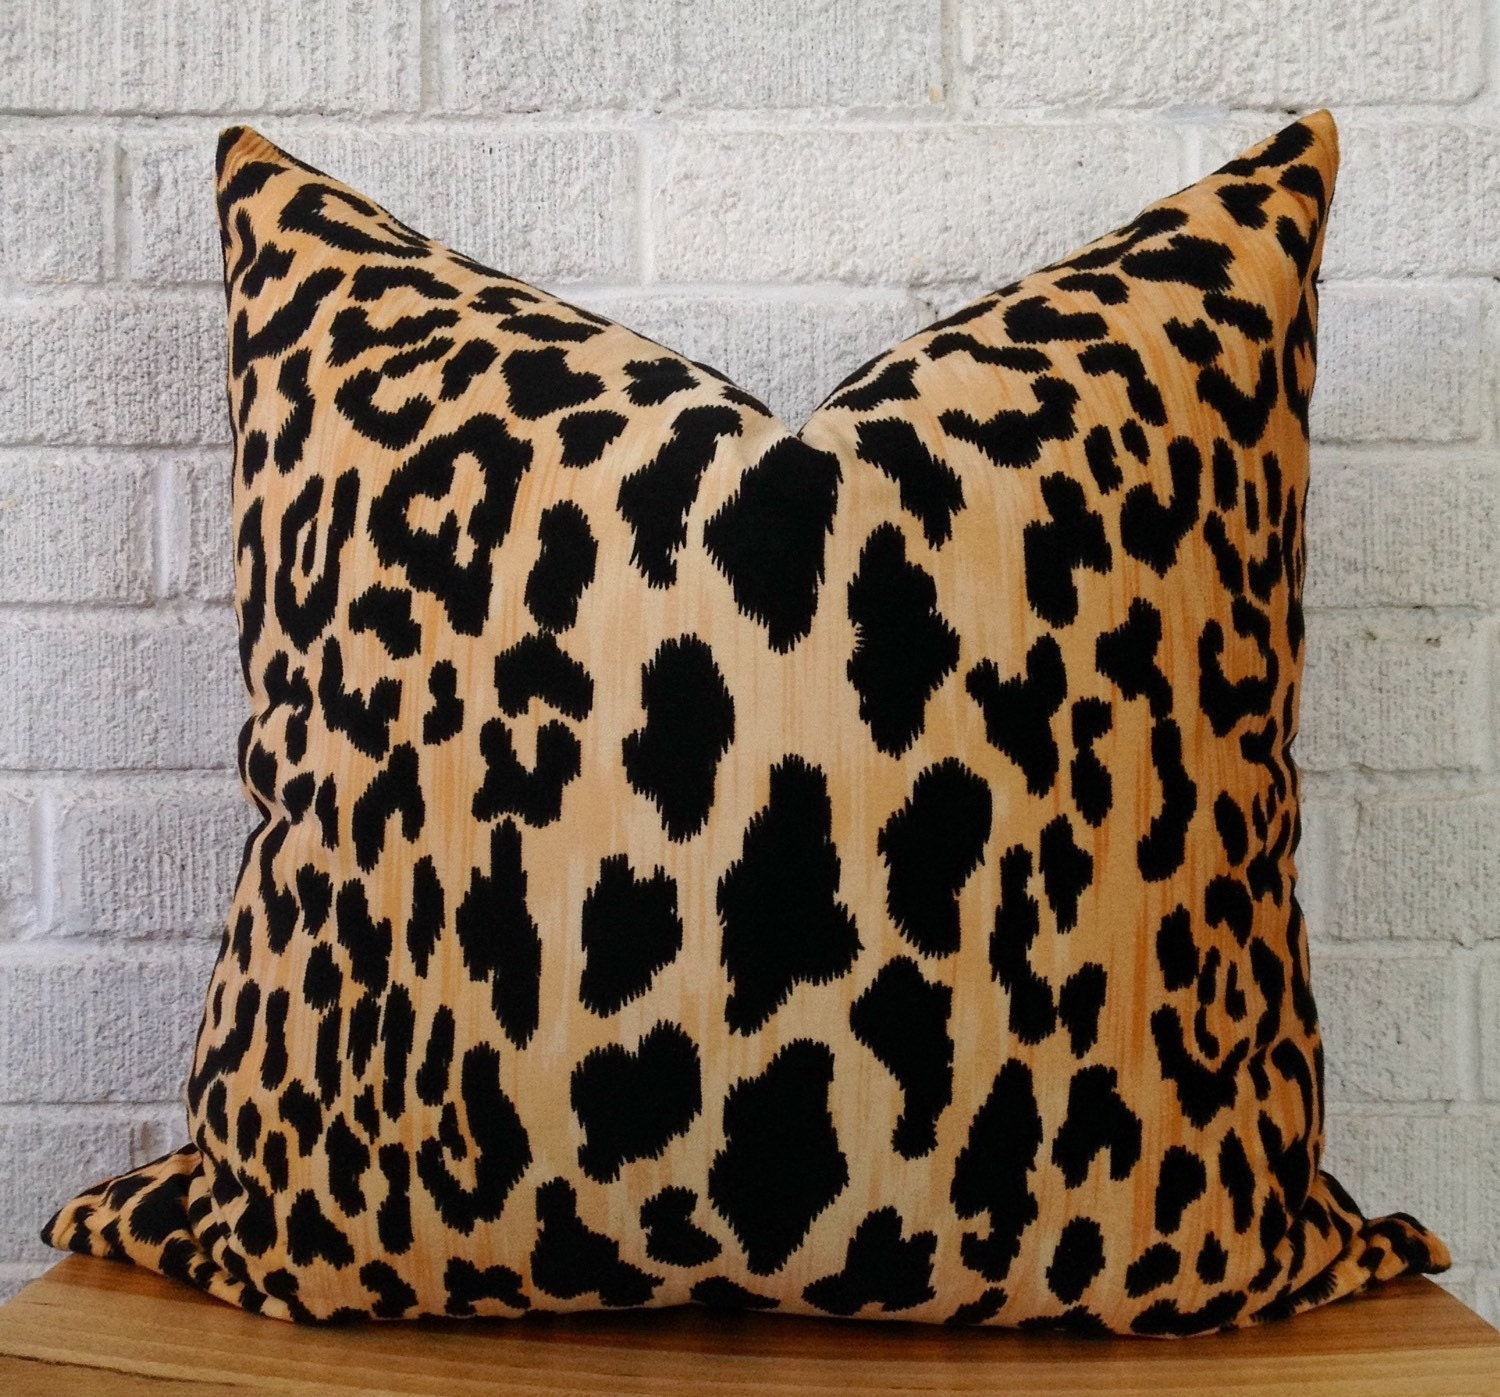 Velvet Animal Print Pillows : Velvet Cheetah Pillow Cover Square leopard black gold animal